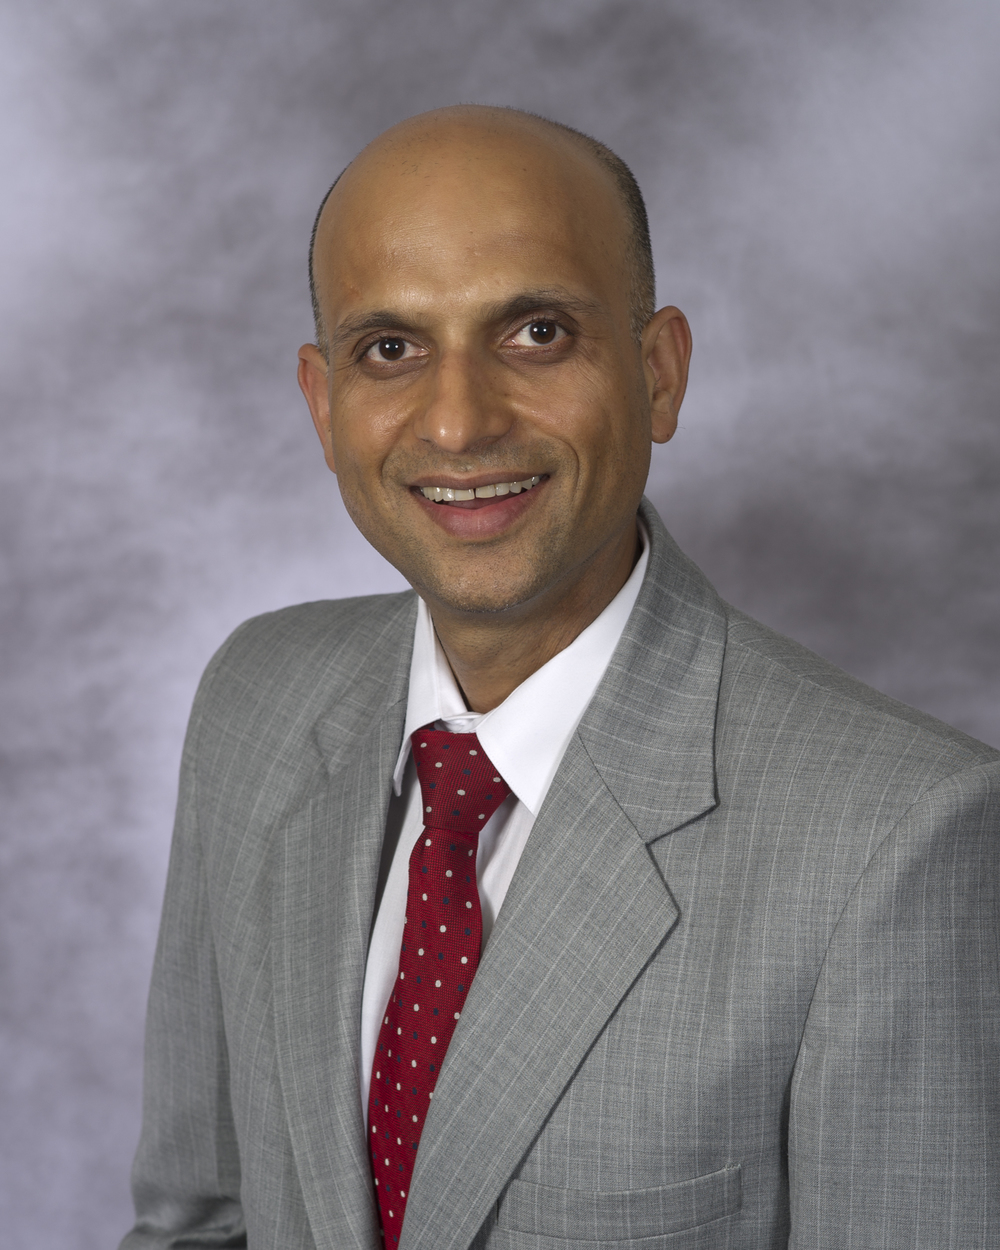 r anand gupta, MD  Attending physician  assistant program director